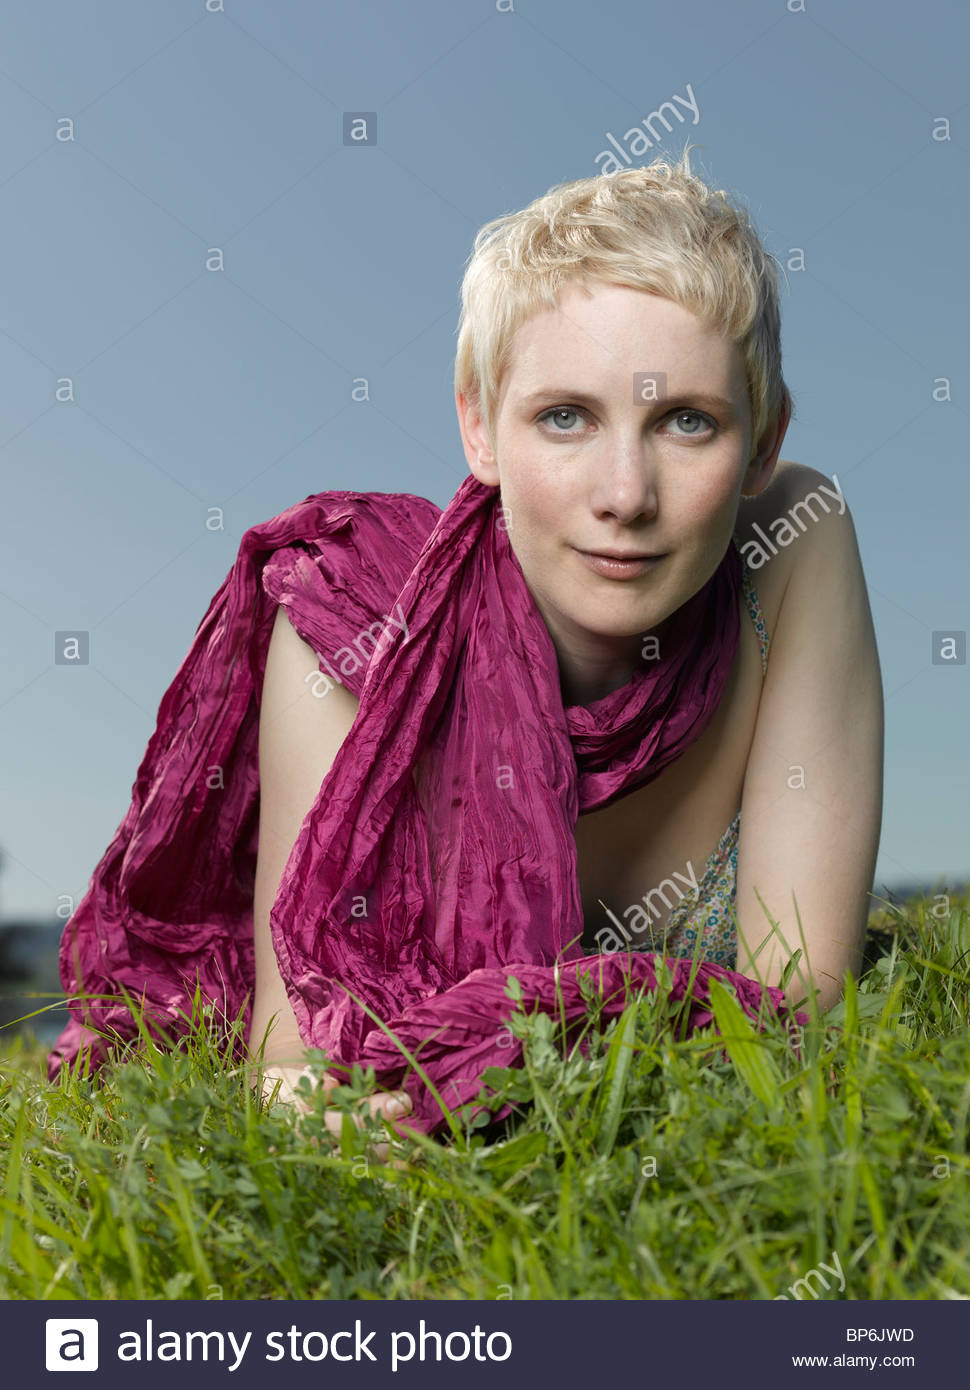 A young woman lying in the grass wearing a magenta scarf - Stock Image